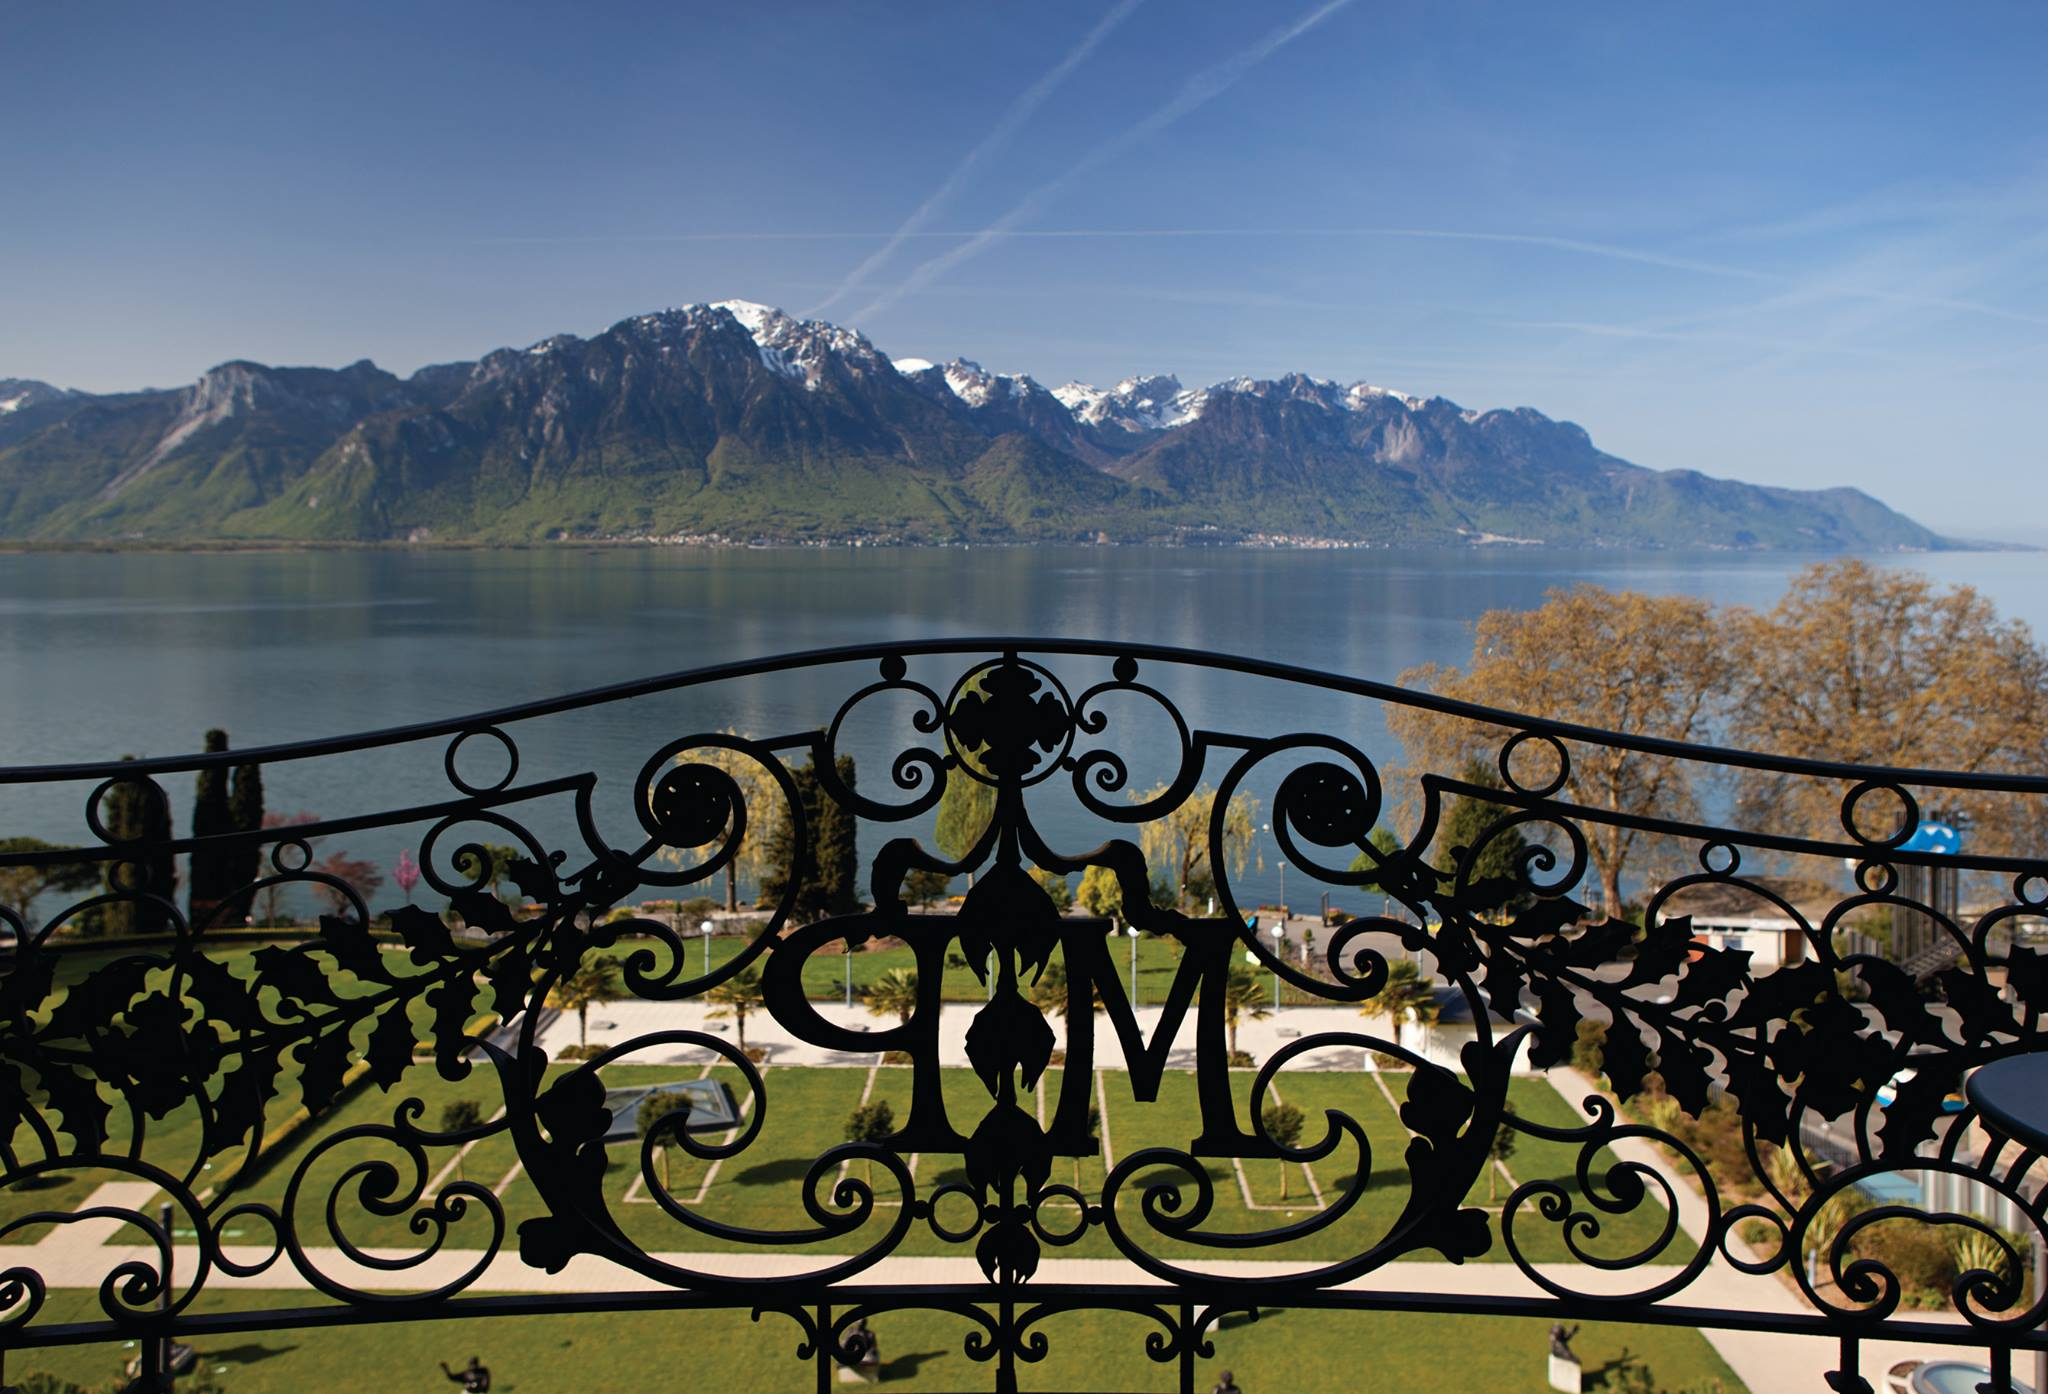 The Montreux Jazz Festival